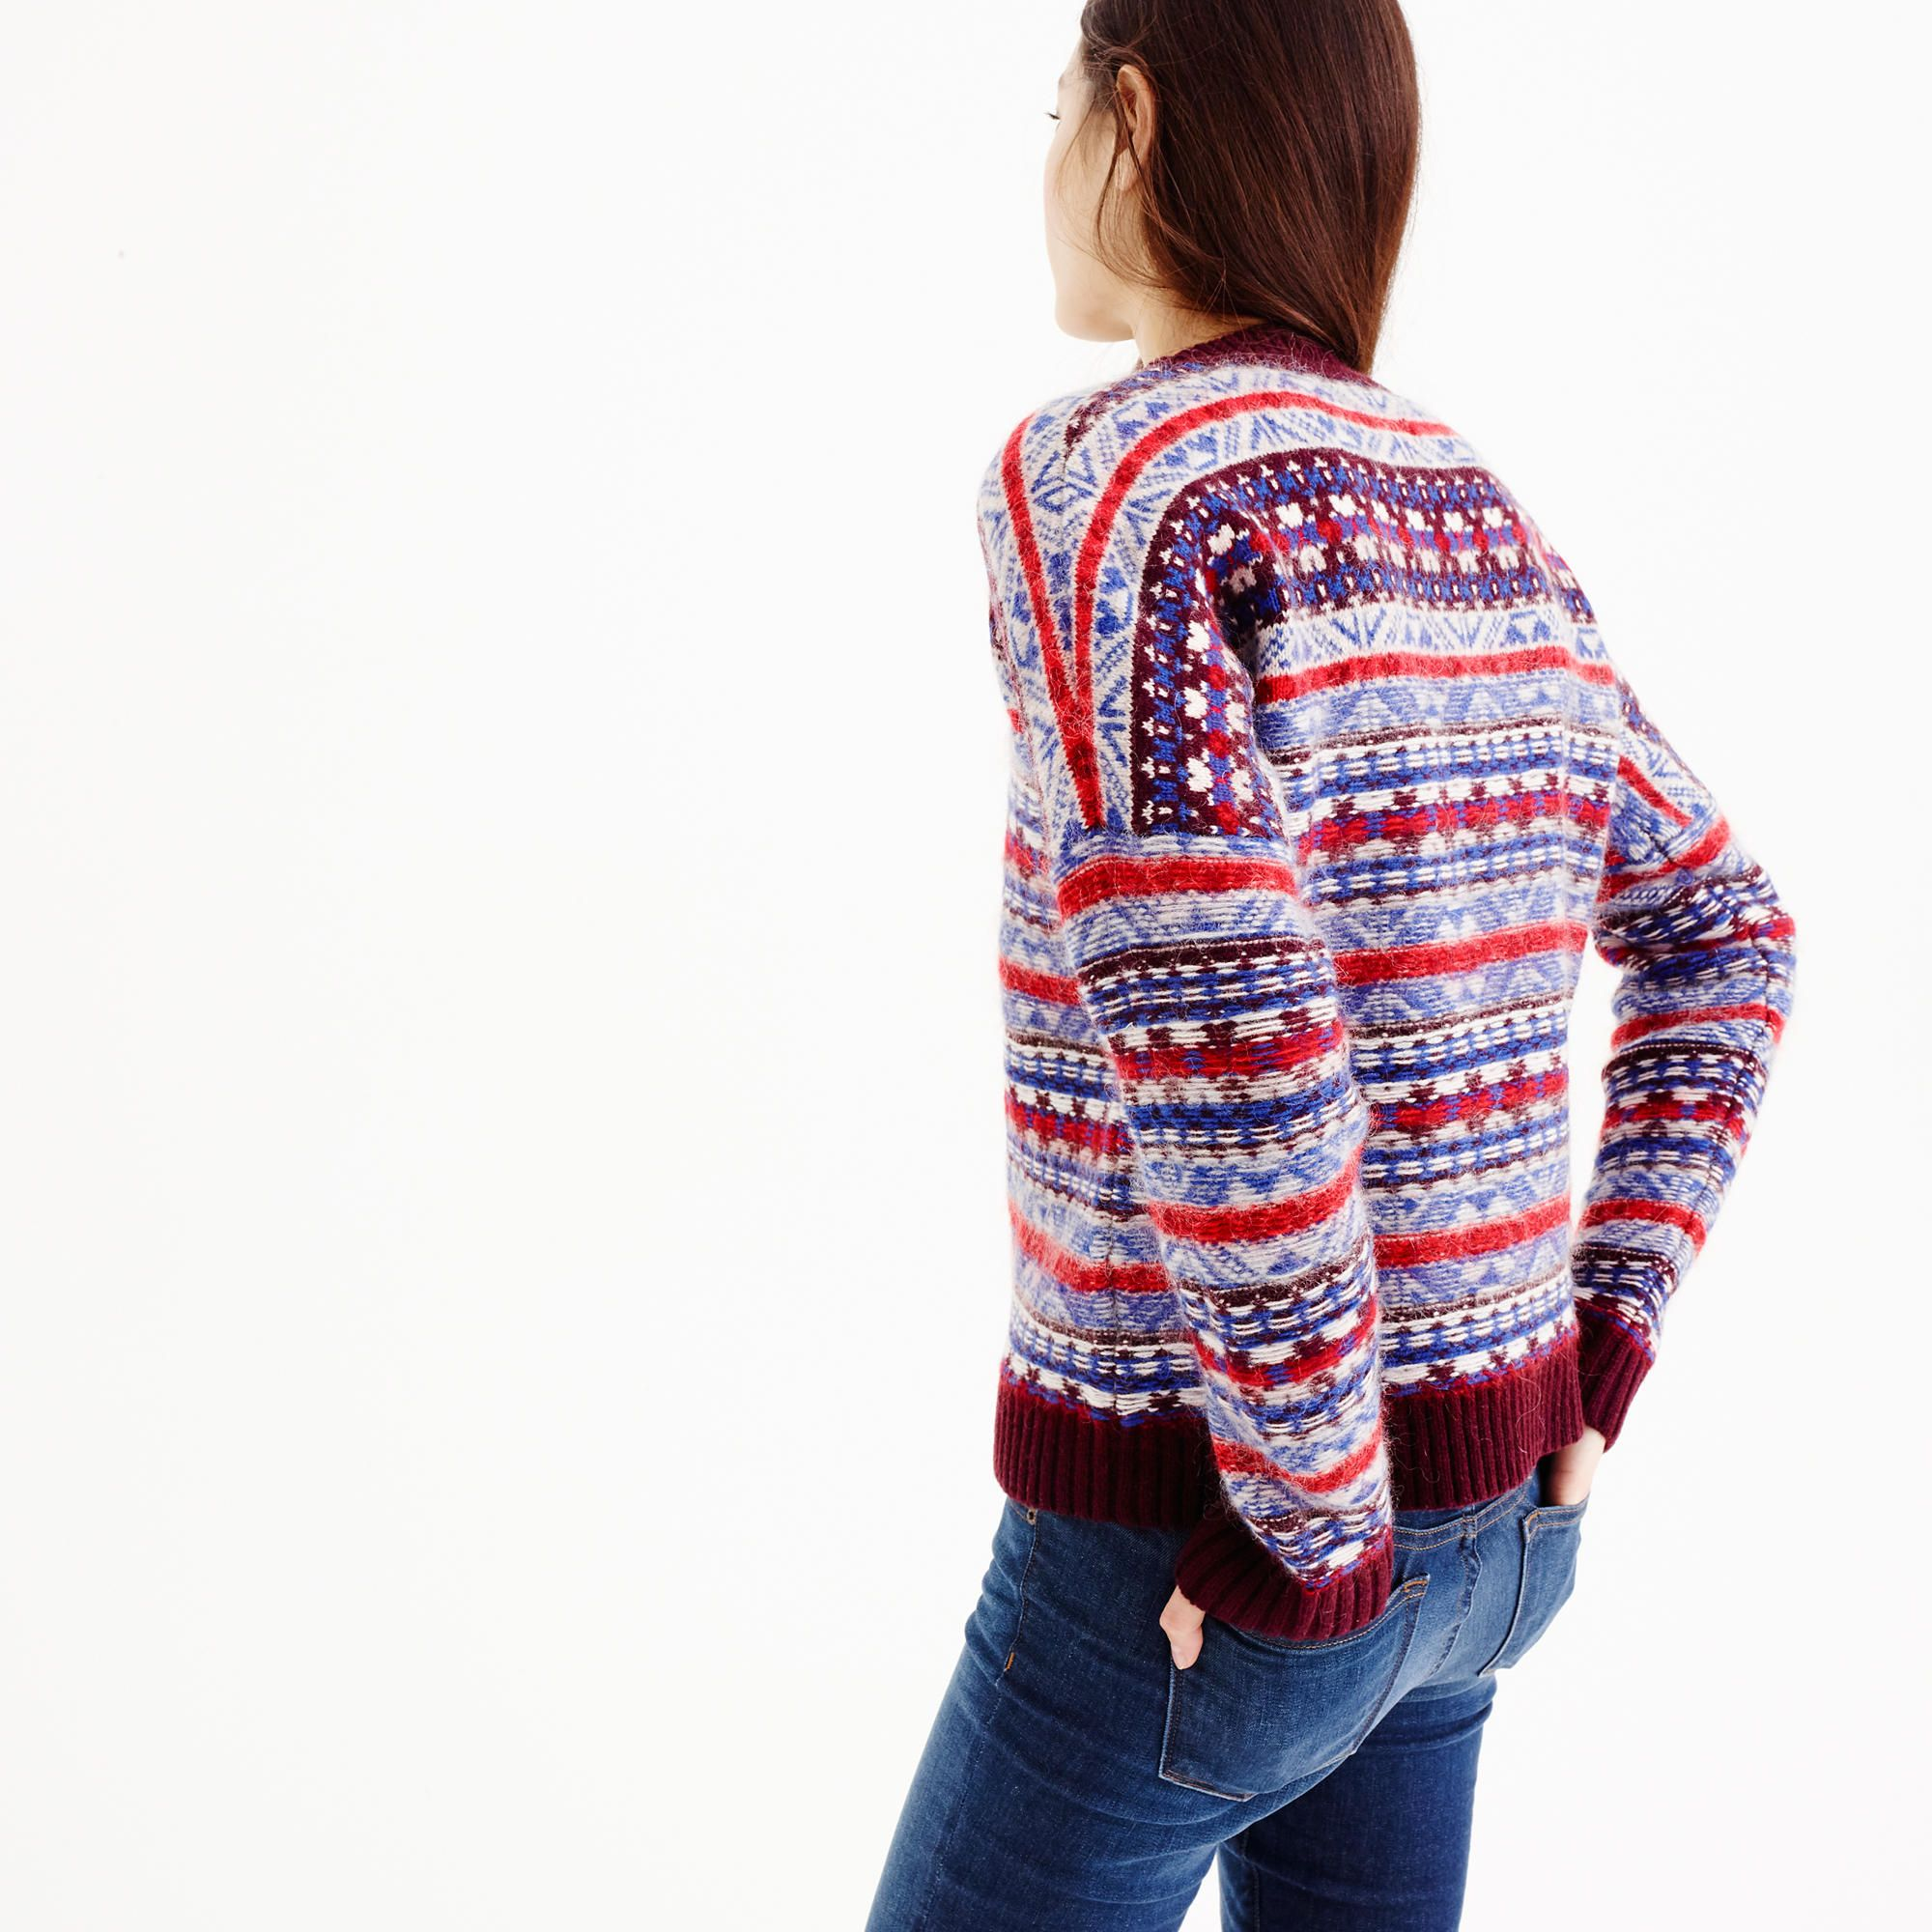 undefined | Knits | Pinterest